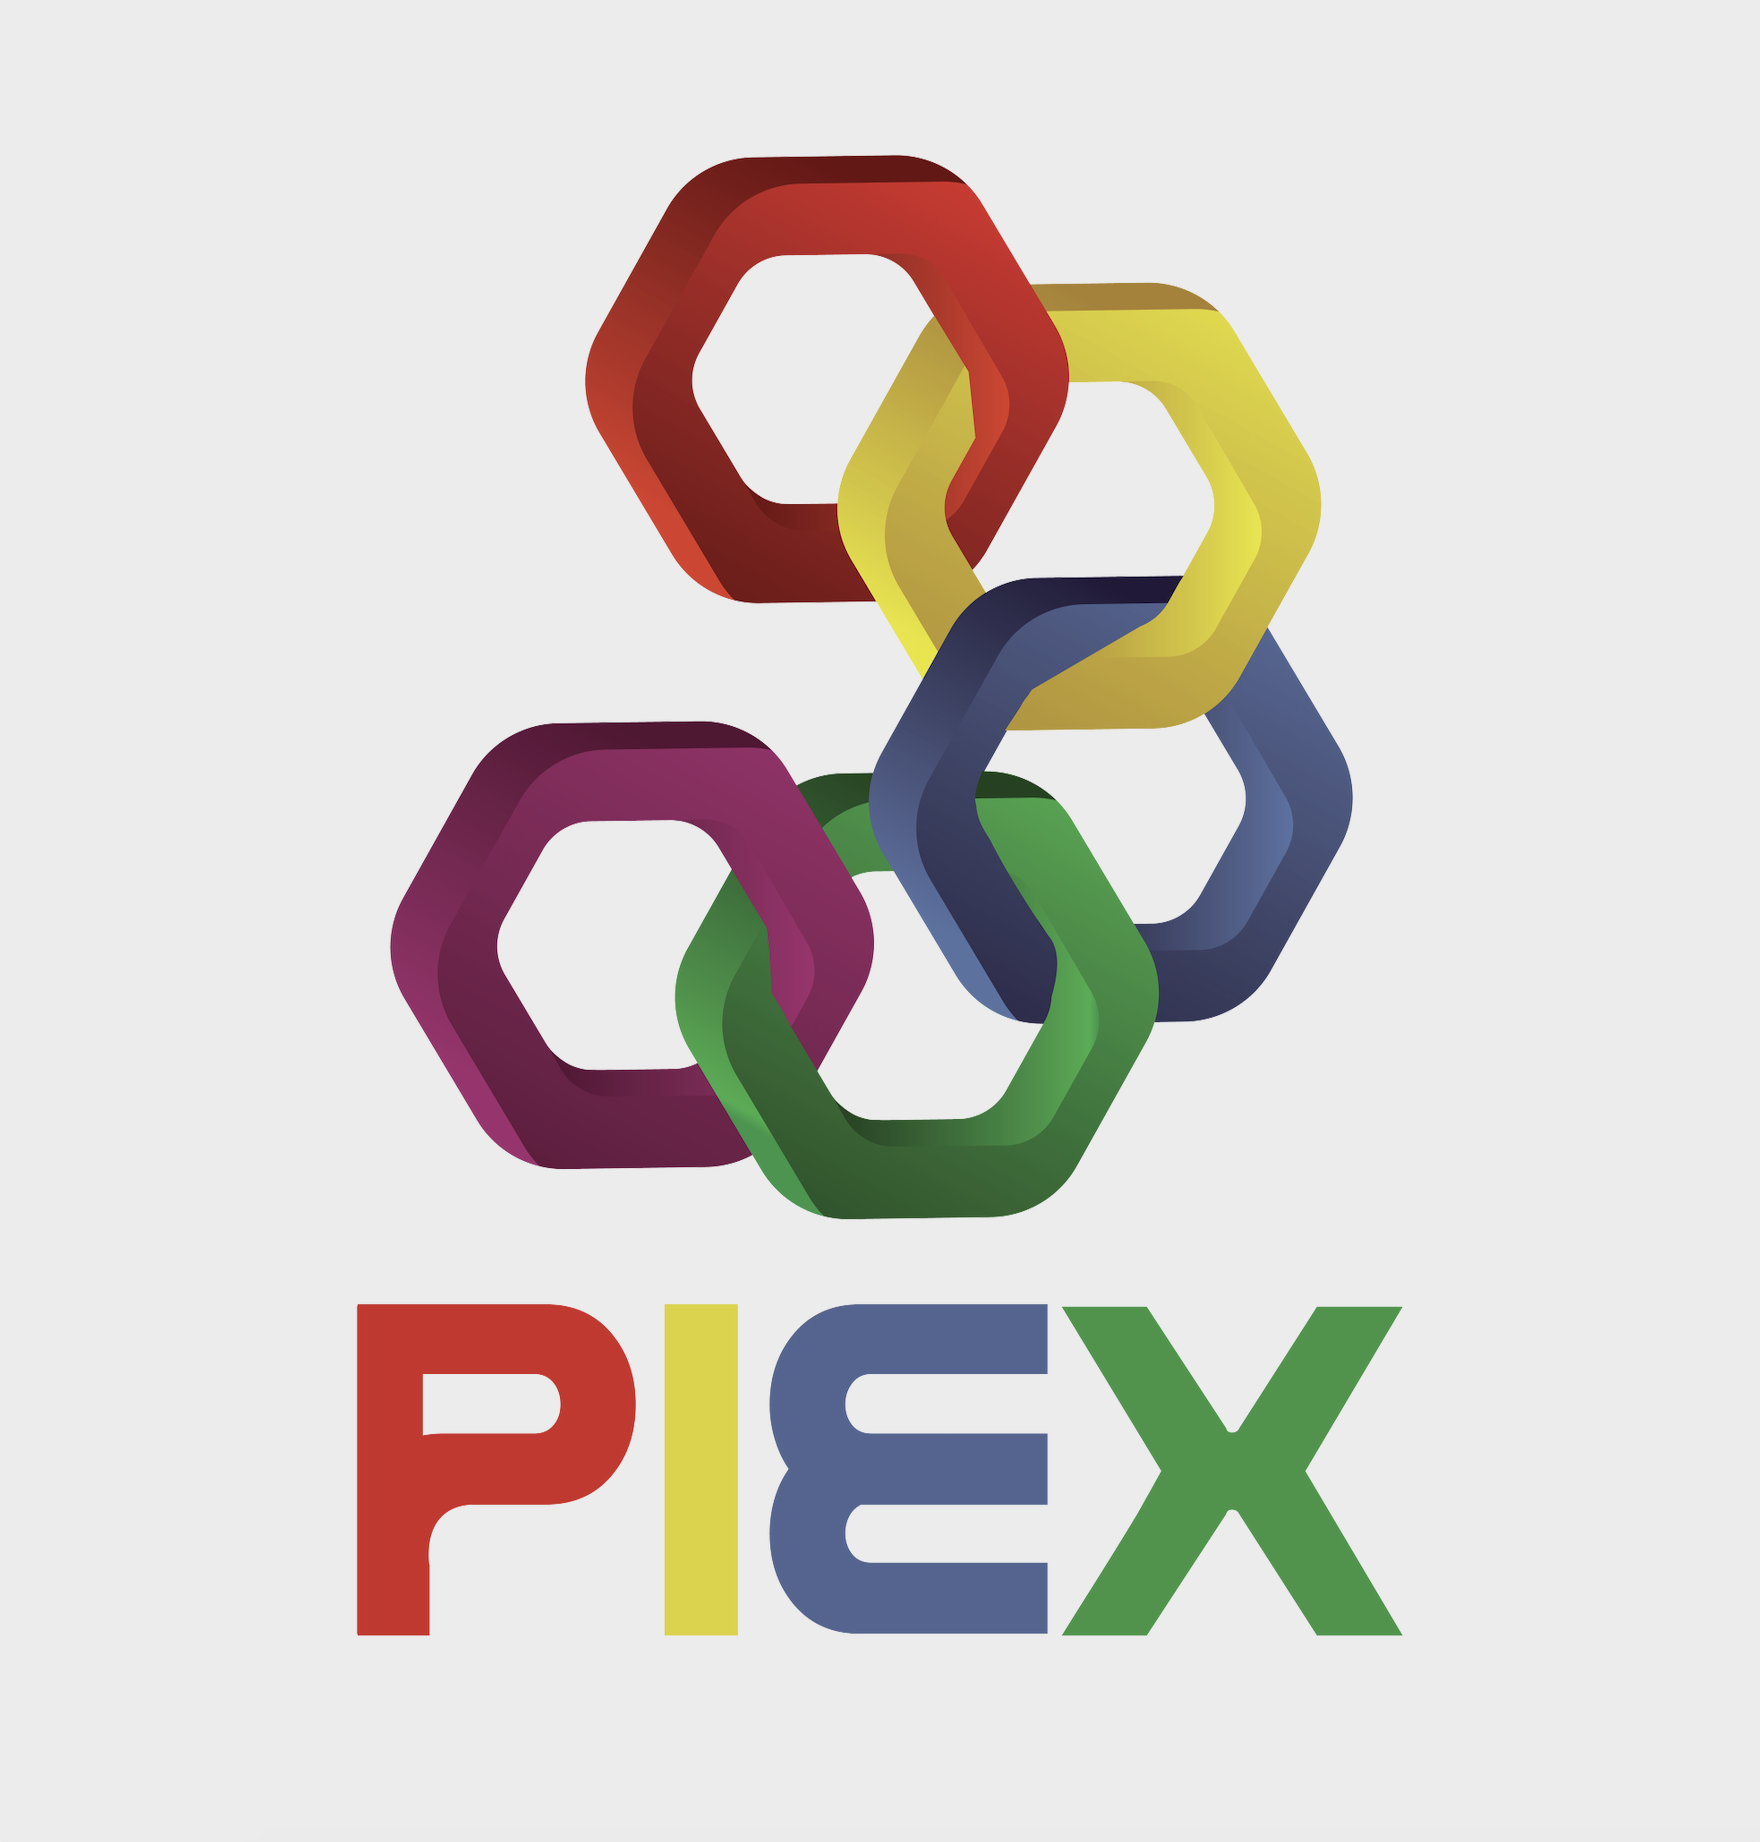 PIEX Education Limited